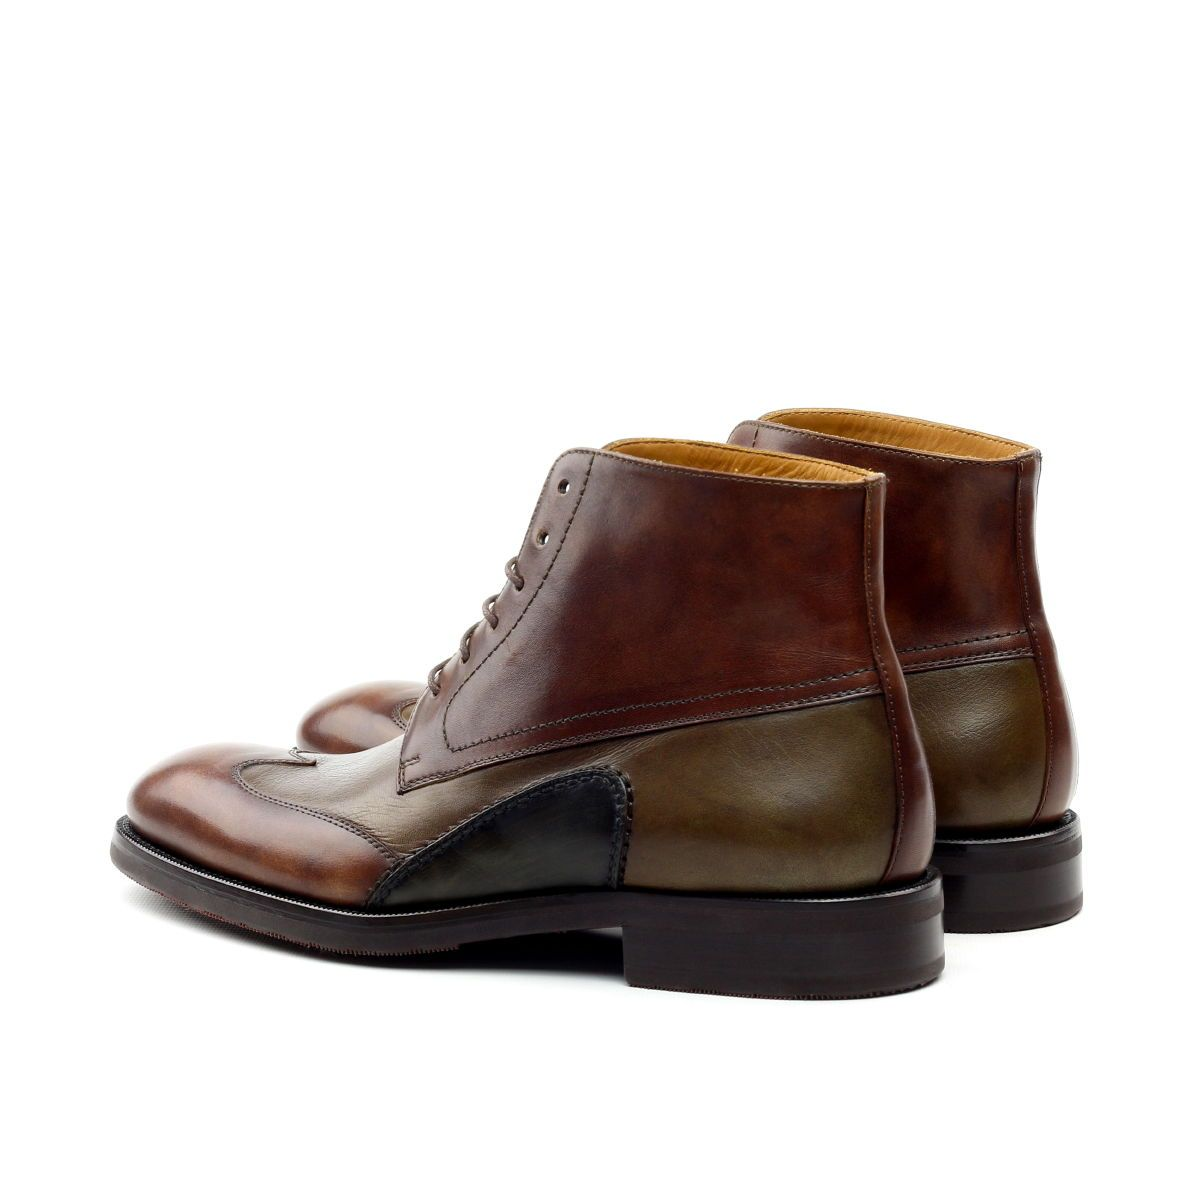 Omine Multicolor Wingtip Chukka Boot